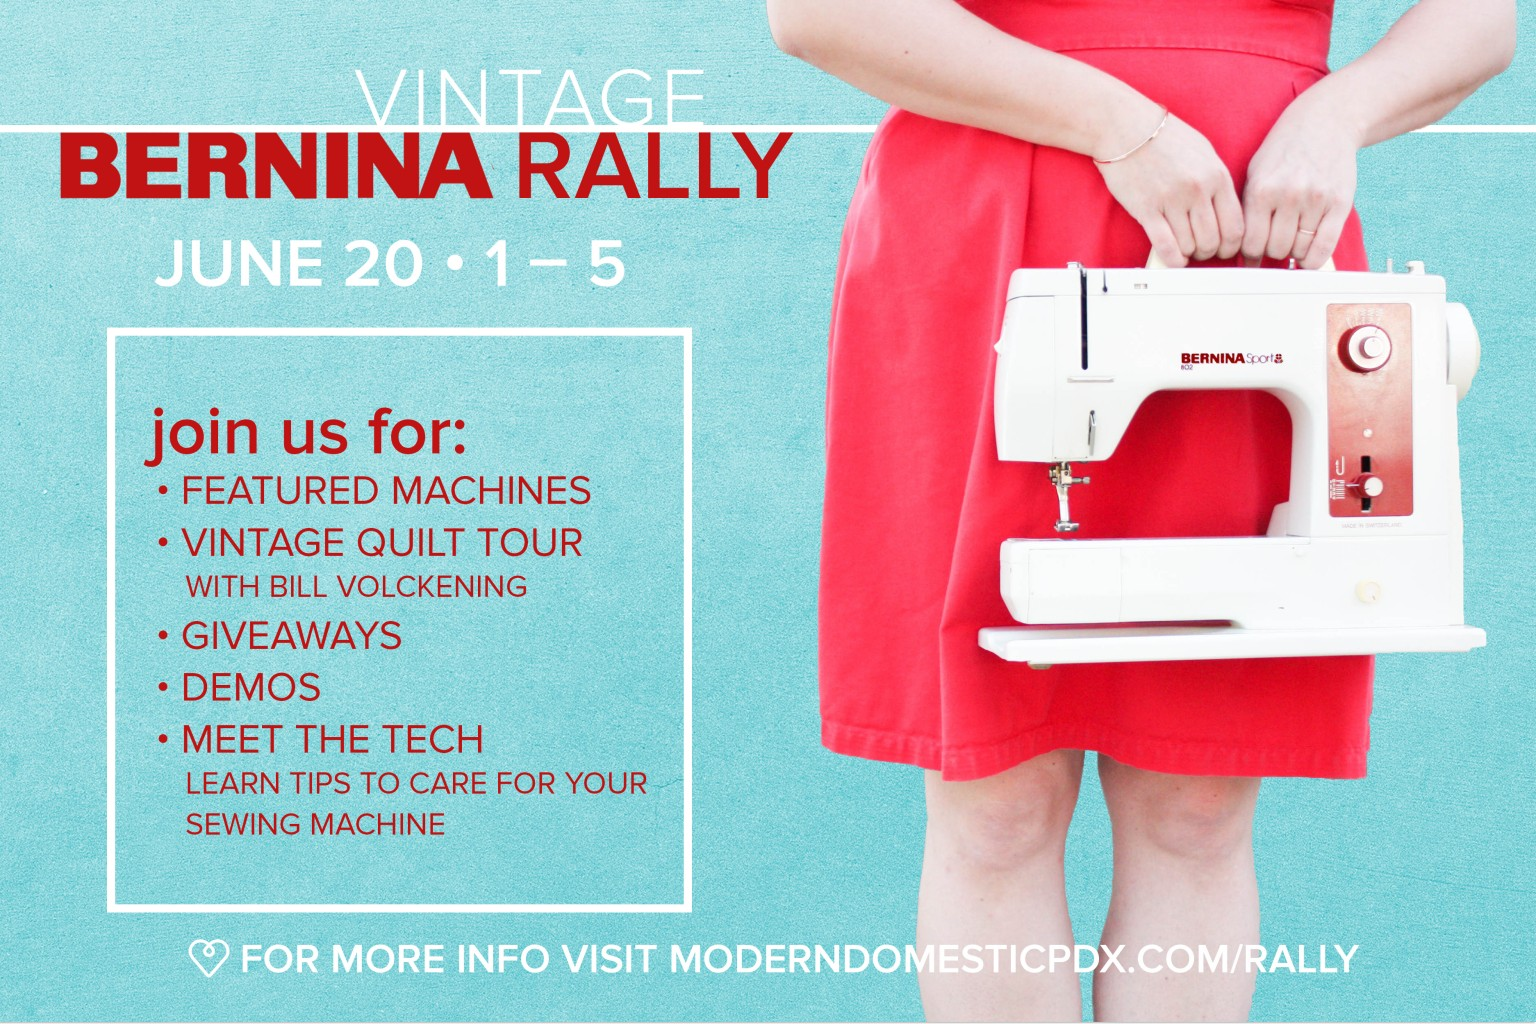 Vintage BERNINA Rally at Modern Domestic